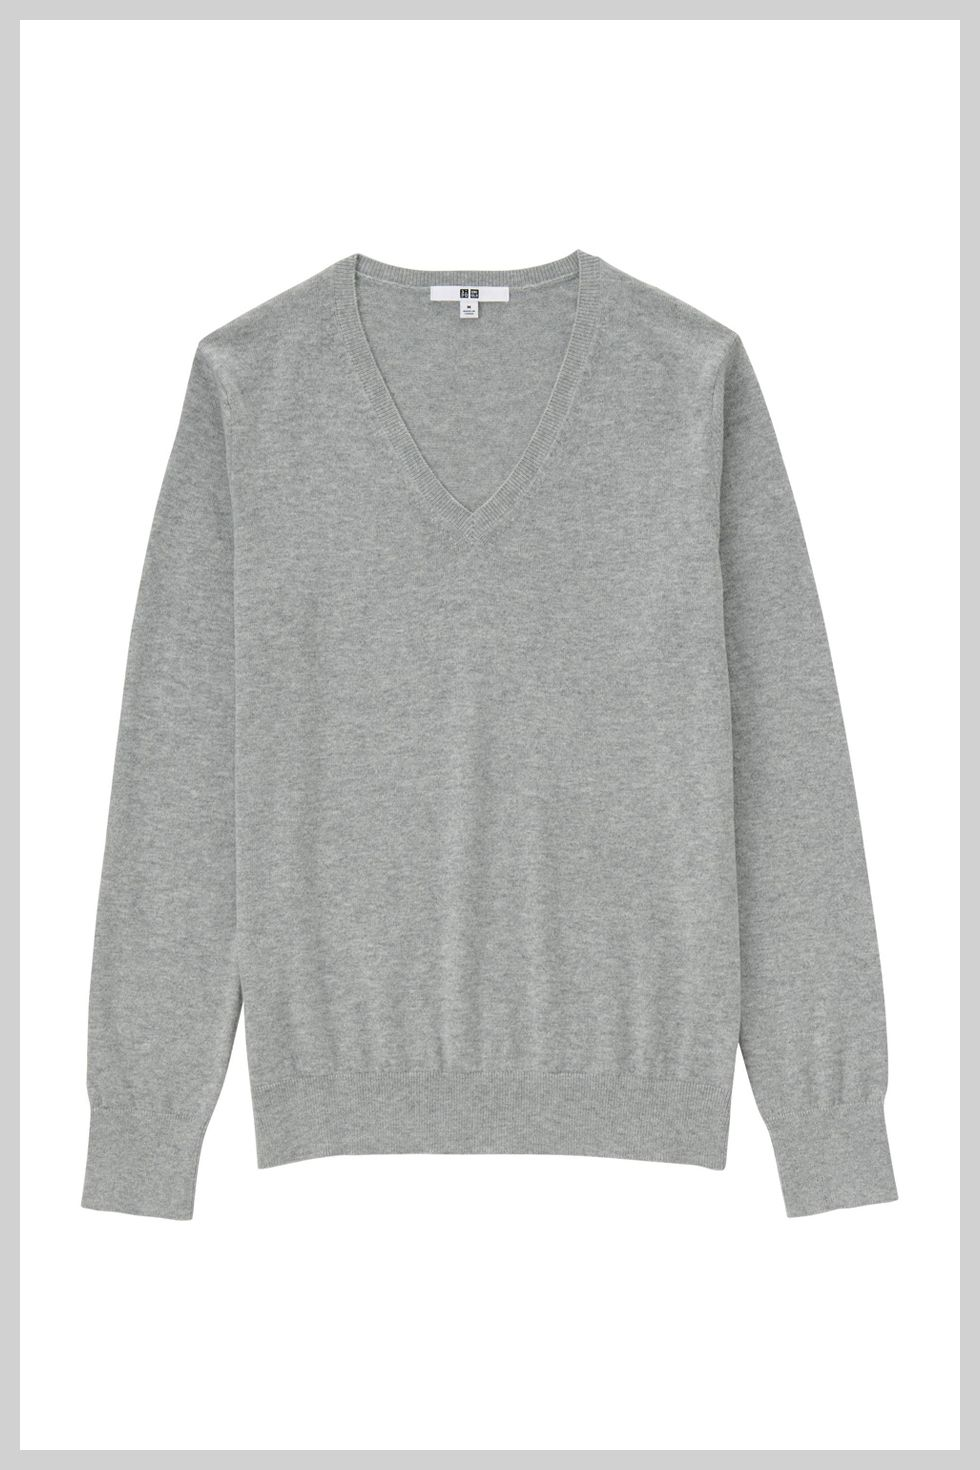 "<p>""You would be surprised by how many cashmere pieces can actually be washed at home,"" says Zoe. ""Always check the care label first to be sure, and as long the piece is washable, you can hand wash using a mild detergent, followed by a protector like <a href=""http://downy.com/en-us/fabric-softener/liquid-fabric-conditioner"" target=""_blank"">Downy Fabric Conditioner</a> to prevent stretching, fading, and pilling. Then, just reshape and lay flat to dry. Never hang delicate cashmere pieces up to dry since this can ruin the garment's shape.<span class=""redactor-invisible-space"">""</span></p><p><span class=""redactor-invisible-space""></span>Why fabric conditioner? ""I think the best analogy is when you condition your hair. I would never *not* condition because then my hair gets frizzy and dry, and the same goes for your clothing,"" explains Zoe. </p><p>Cashmere sweater, $20; <a href=""http://www.uniqlo.com/us/product/women-cotton-cashmere-v-neck-sweater-164401.html#16~/women/sweaters/cotton-cashmere/v-necks/~ "" target=""_blank"">uniqlo.com</a></p>"